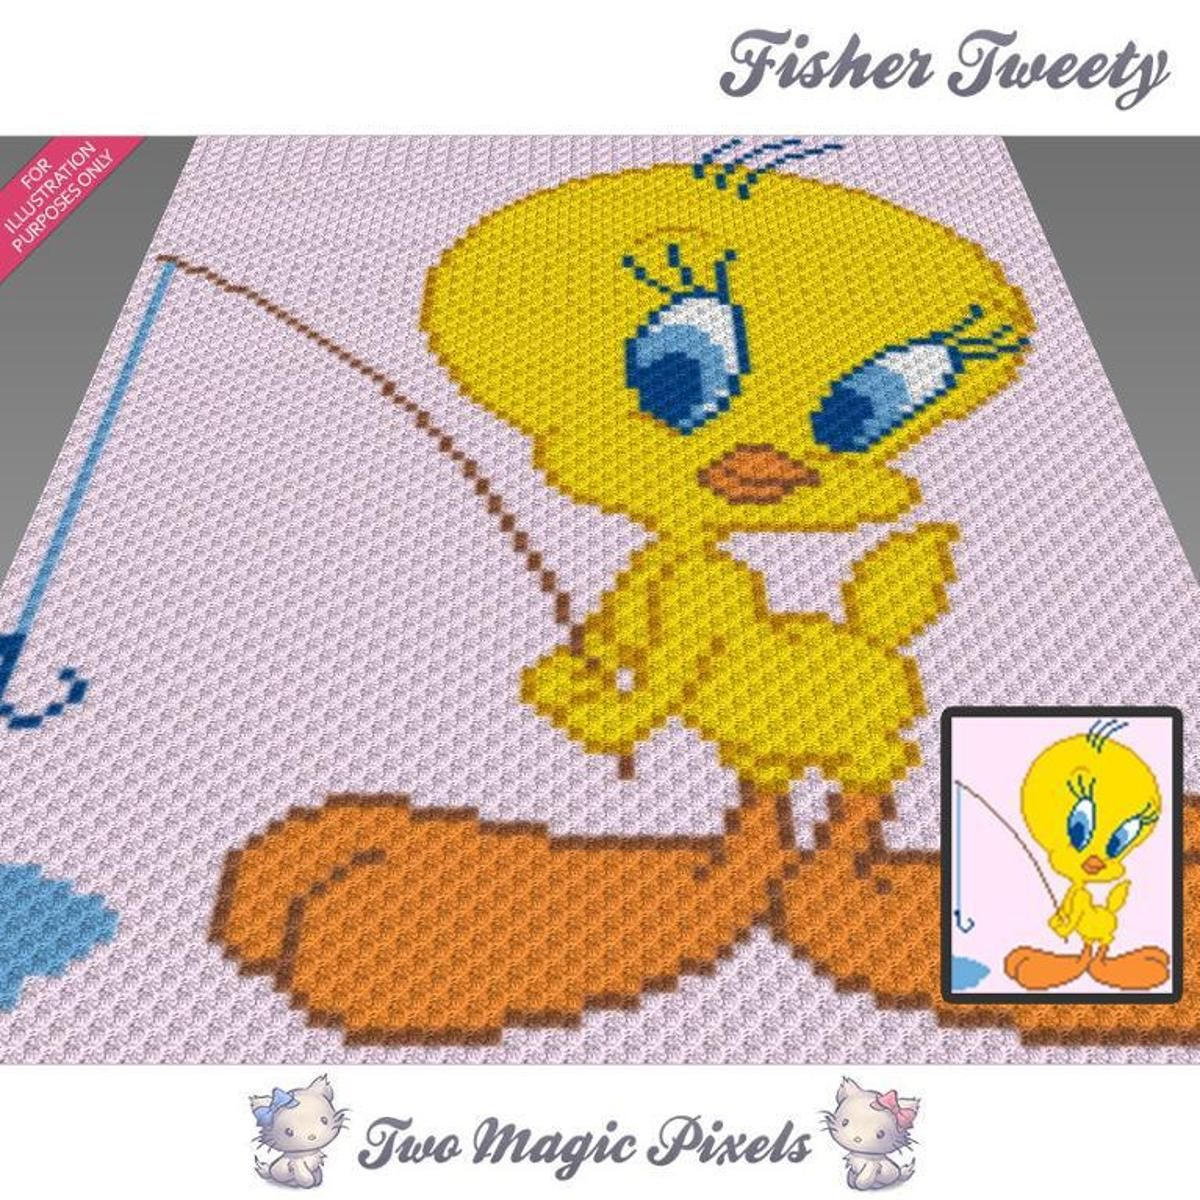 Fisher Tweety C2C Crochet Graph | Pinterest | c2c Häkeln, Deckchen ...